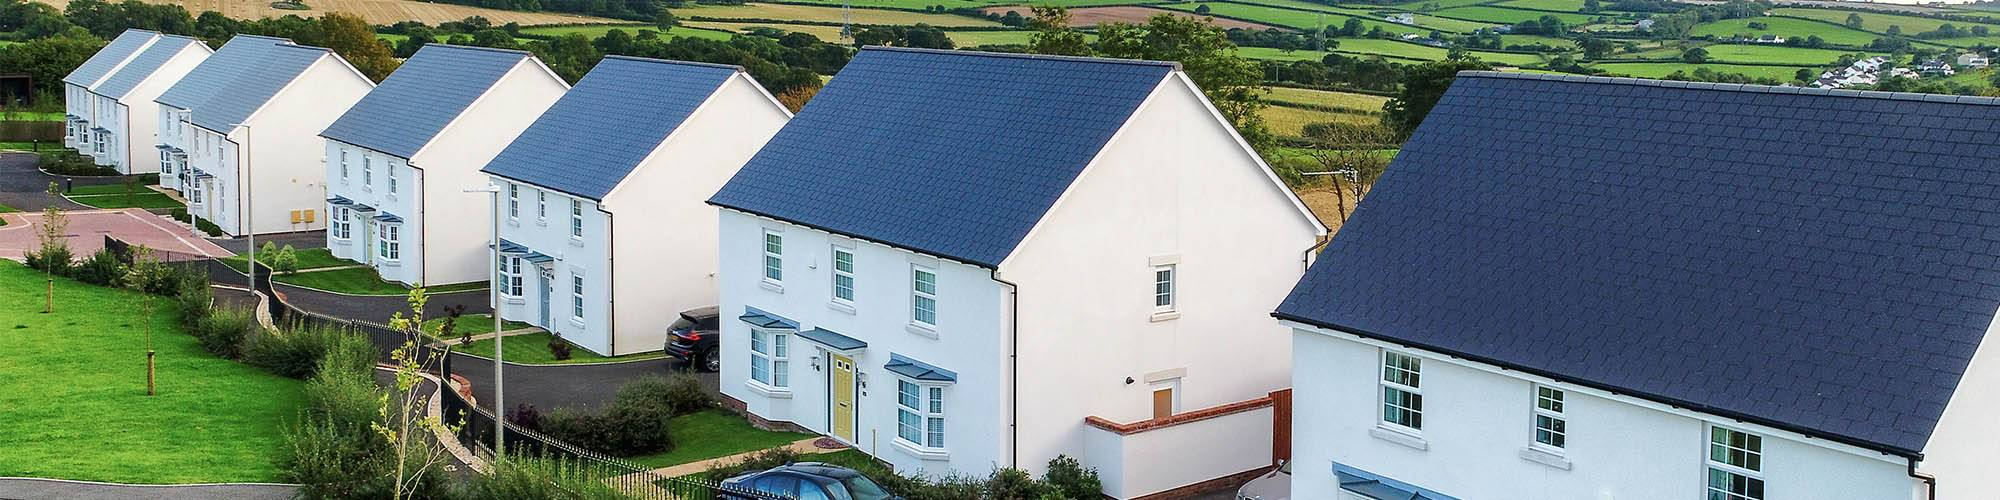 Houses with Cembrit Slate Roof